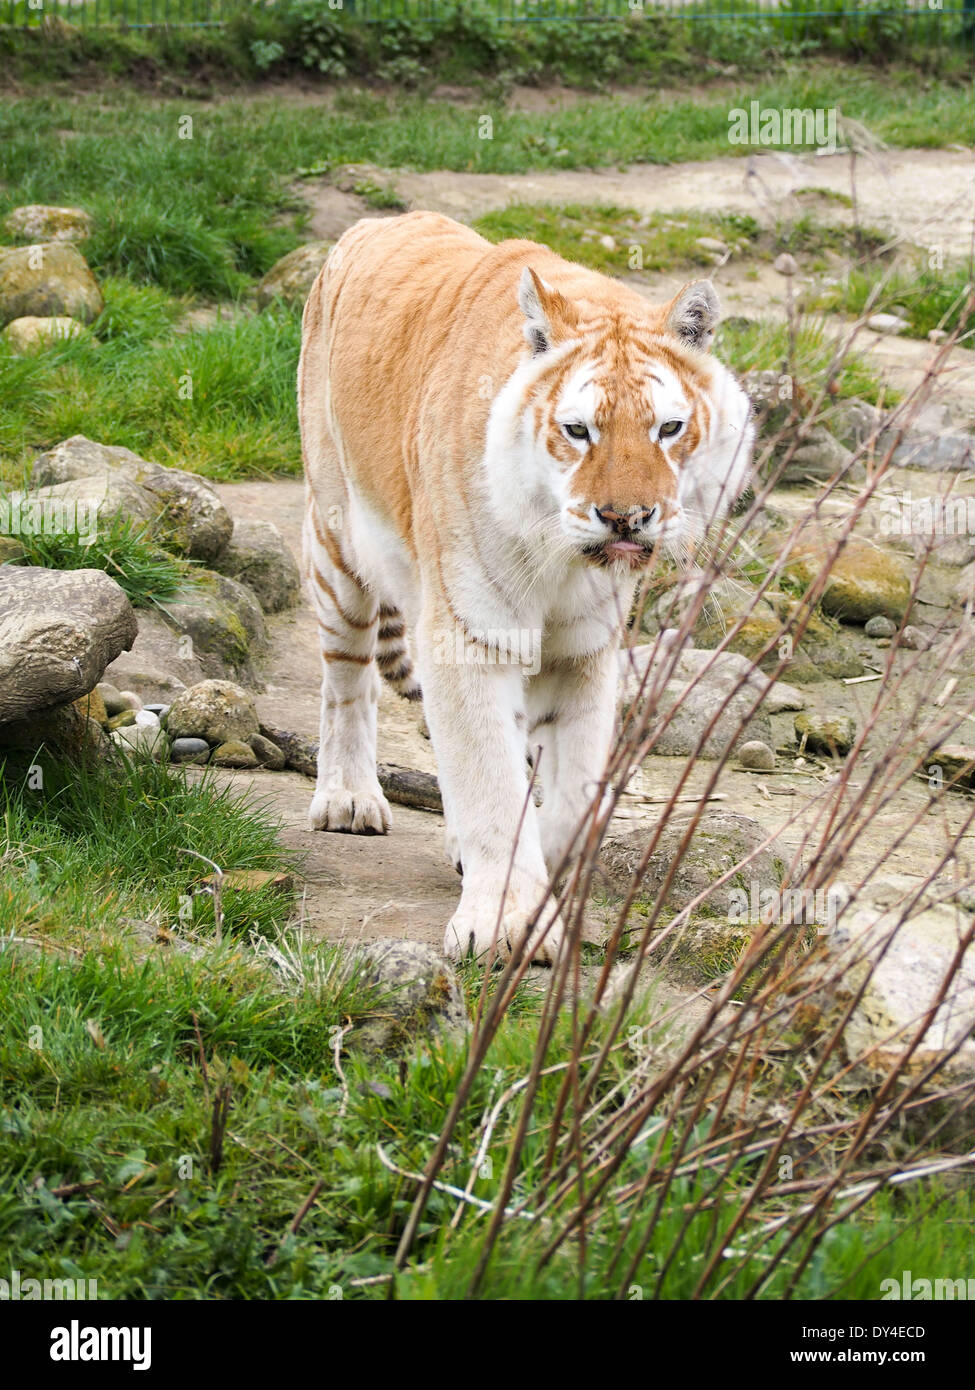 Diamond, a Bengal tiger homed within the Isle of Wight zoo. Diamonds parents are carriers of the white gene. - Stock Image